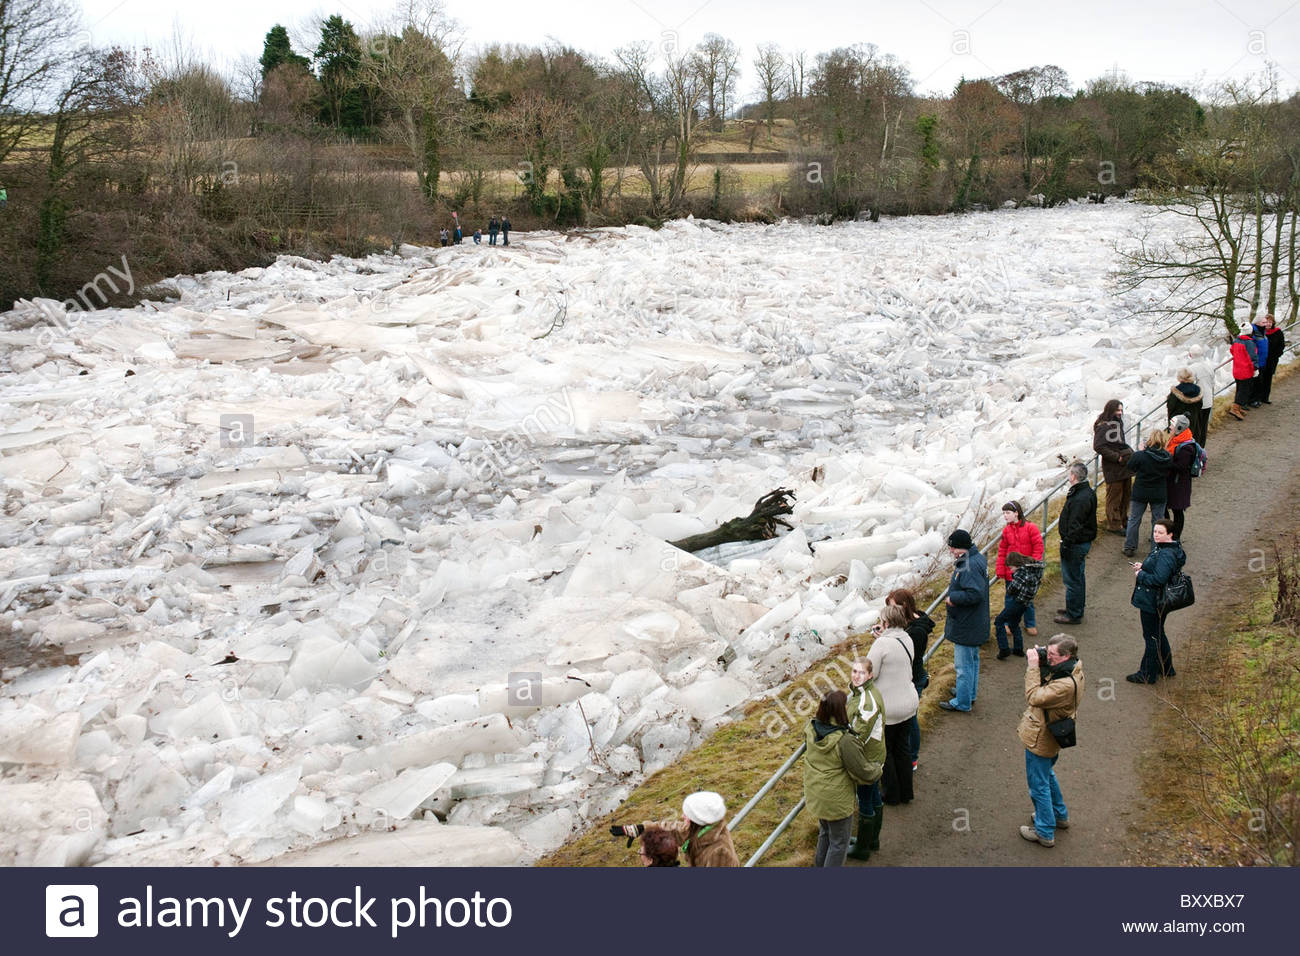 The River Ayr, Scotland frozen with pack ice - Stock Image